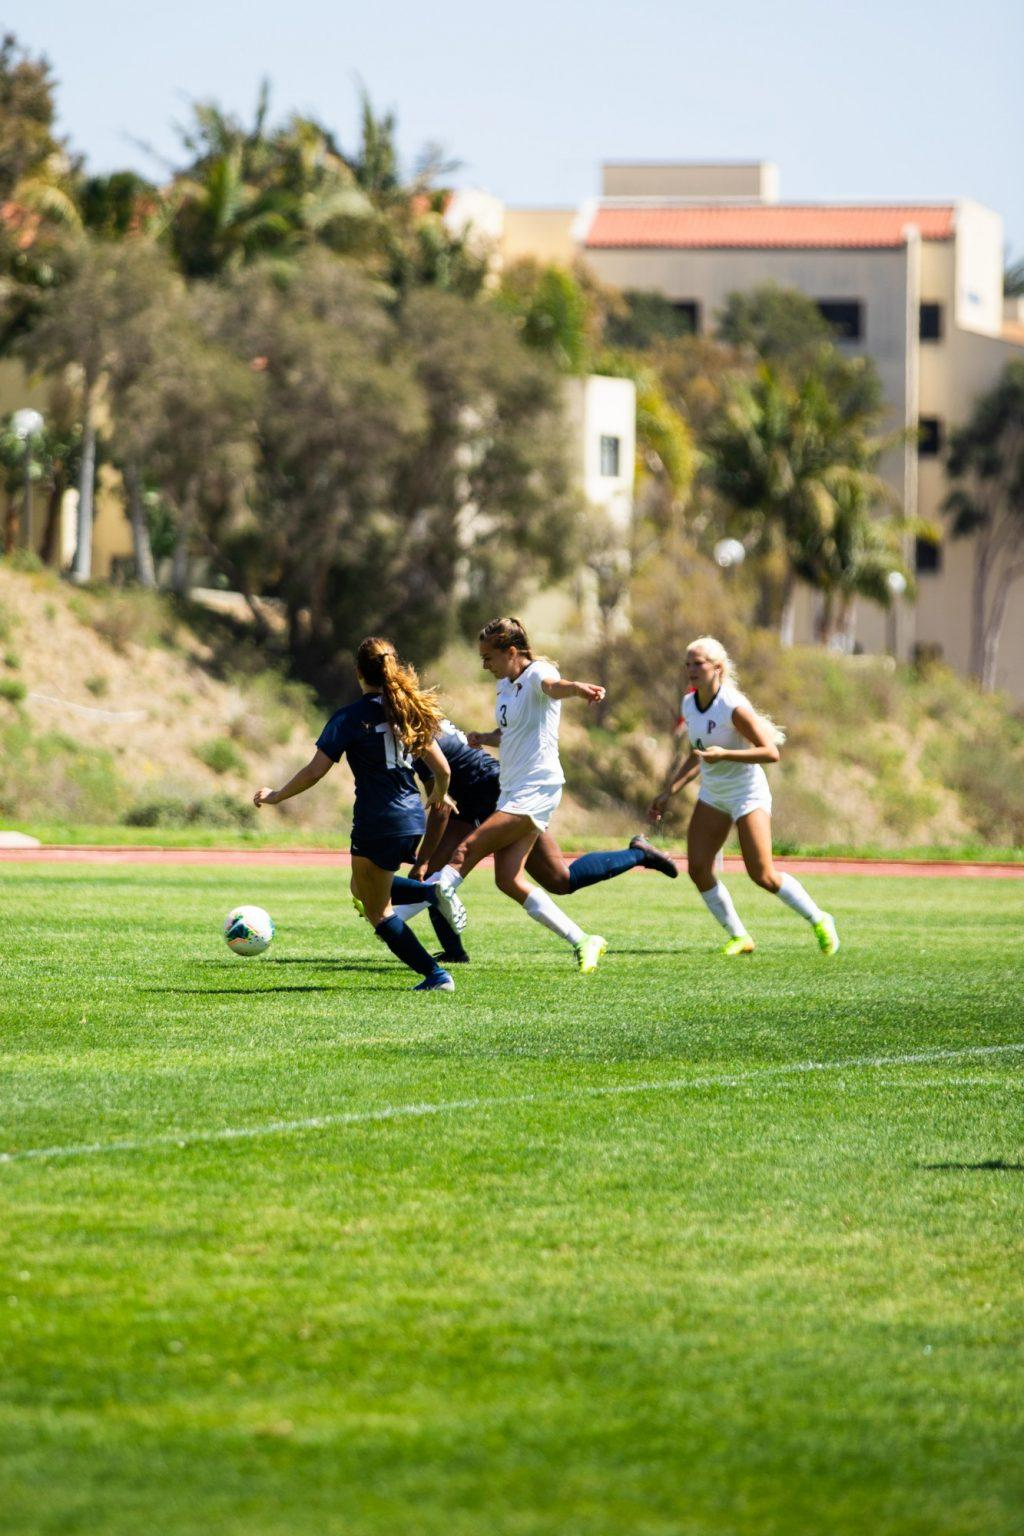 Senior forward Aliyah Satterfield shoots with her left foot between two San Diego defenders in the 88th minute Saturday in Malibu. Satterfield scored on the play, extending the Waves' lead to 7-0.